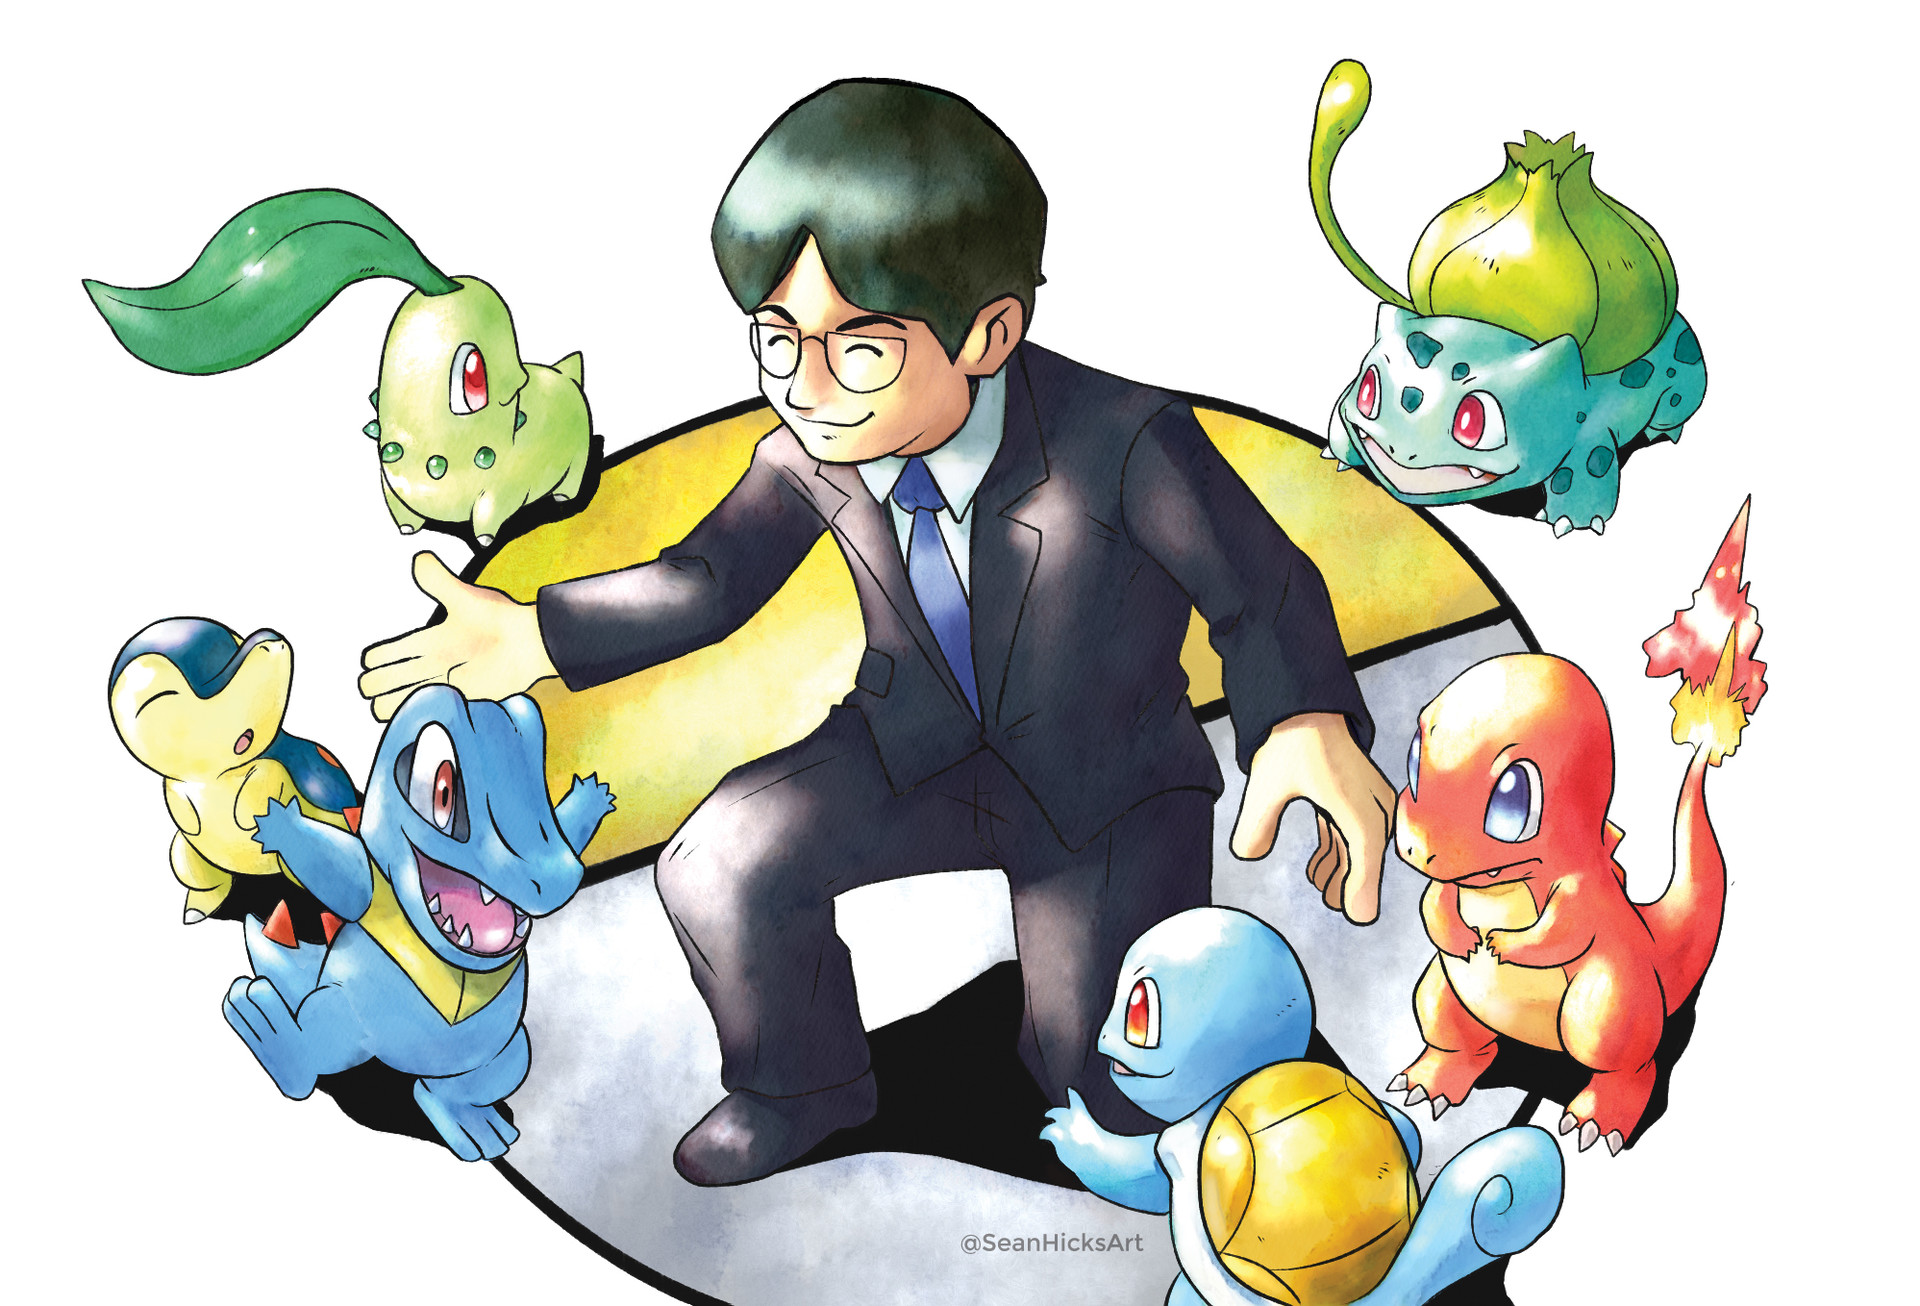 Iwata played a big role for Pokemon Gold & Silver by merging the regions from the past games into the new ones. I illustrated this task by having Iwata introduce the starter pokemon from the different regions to one another.